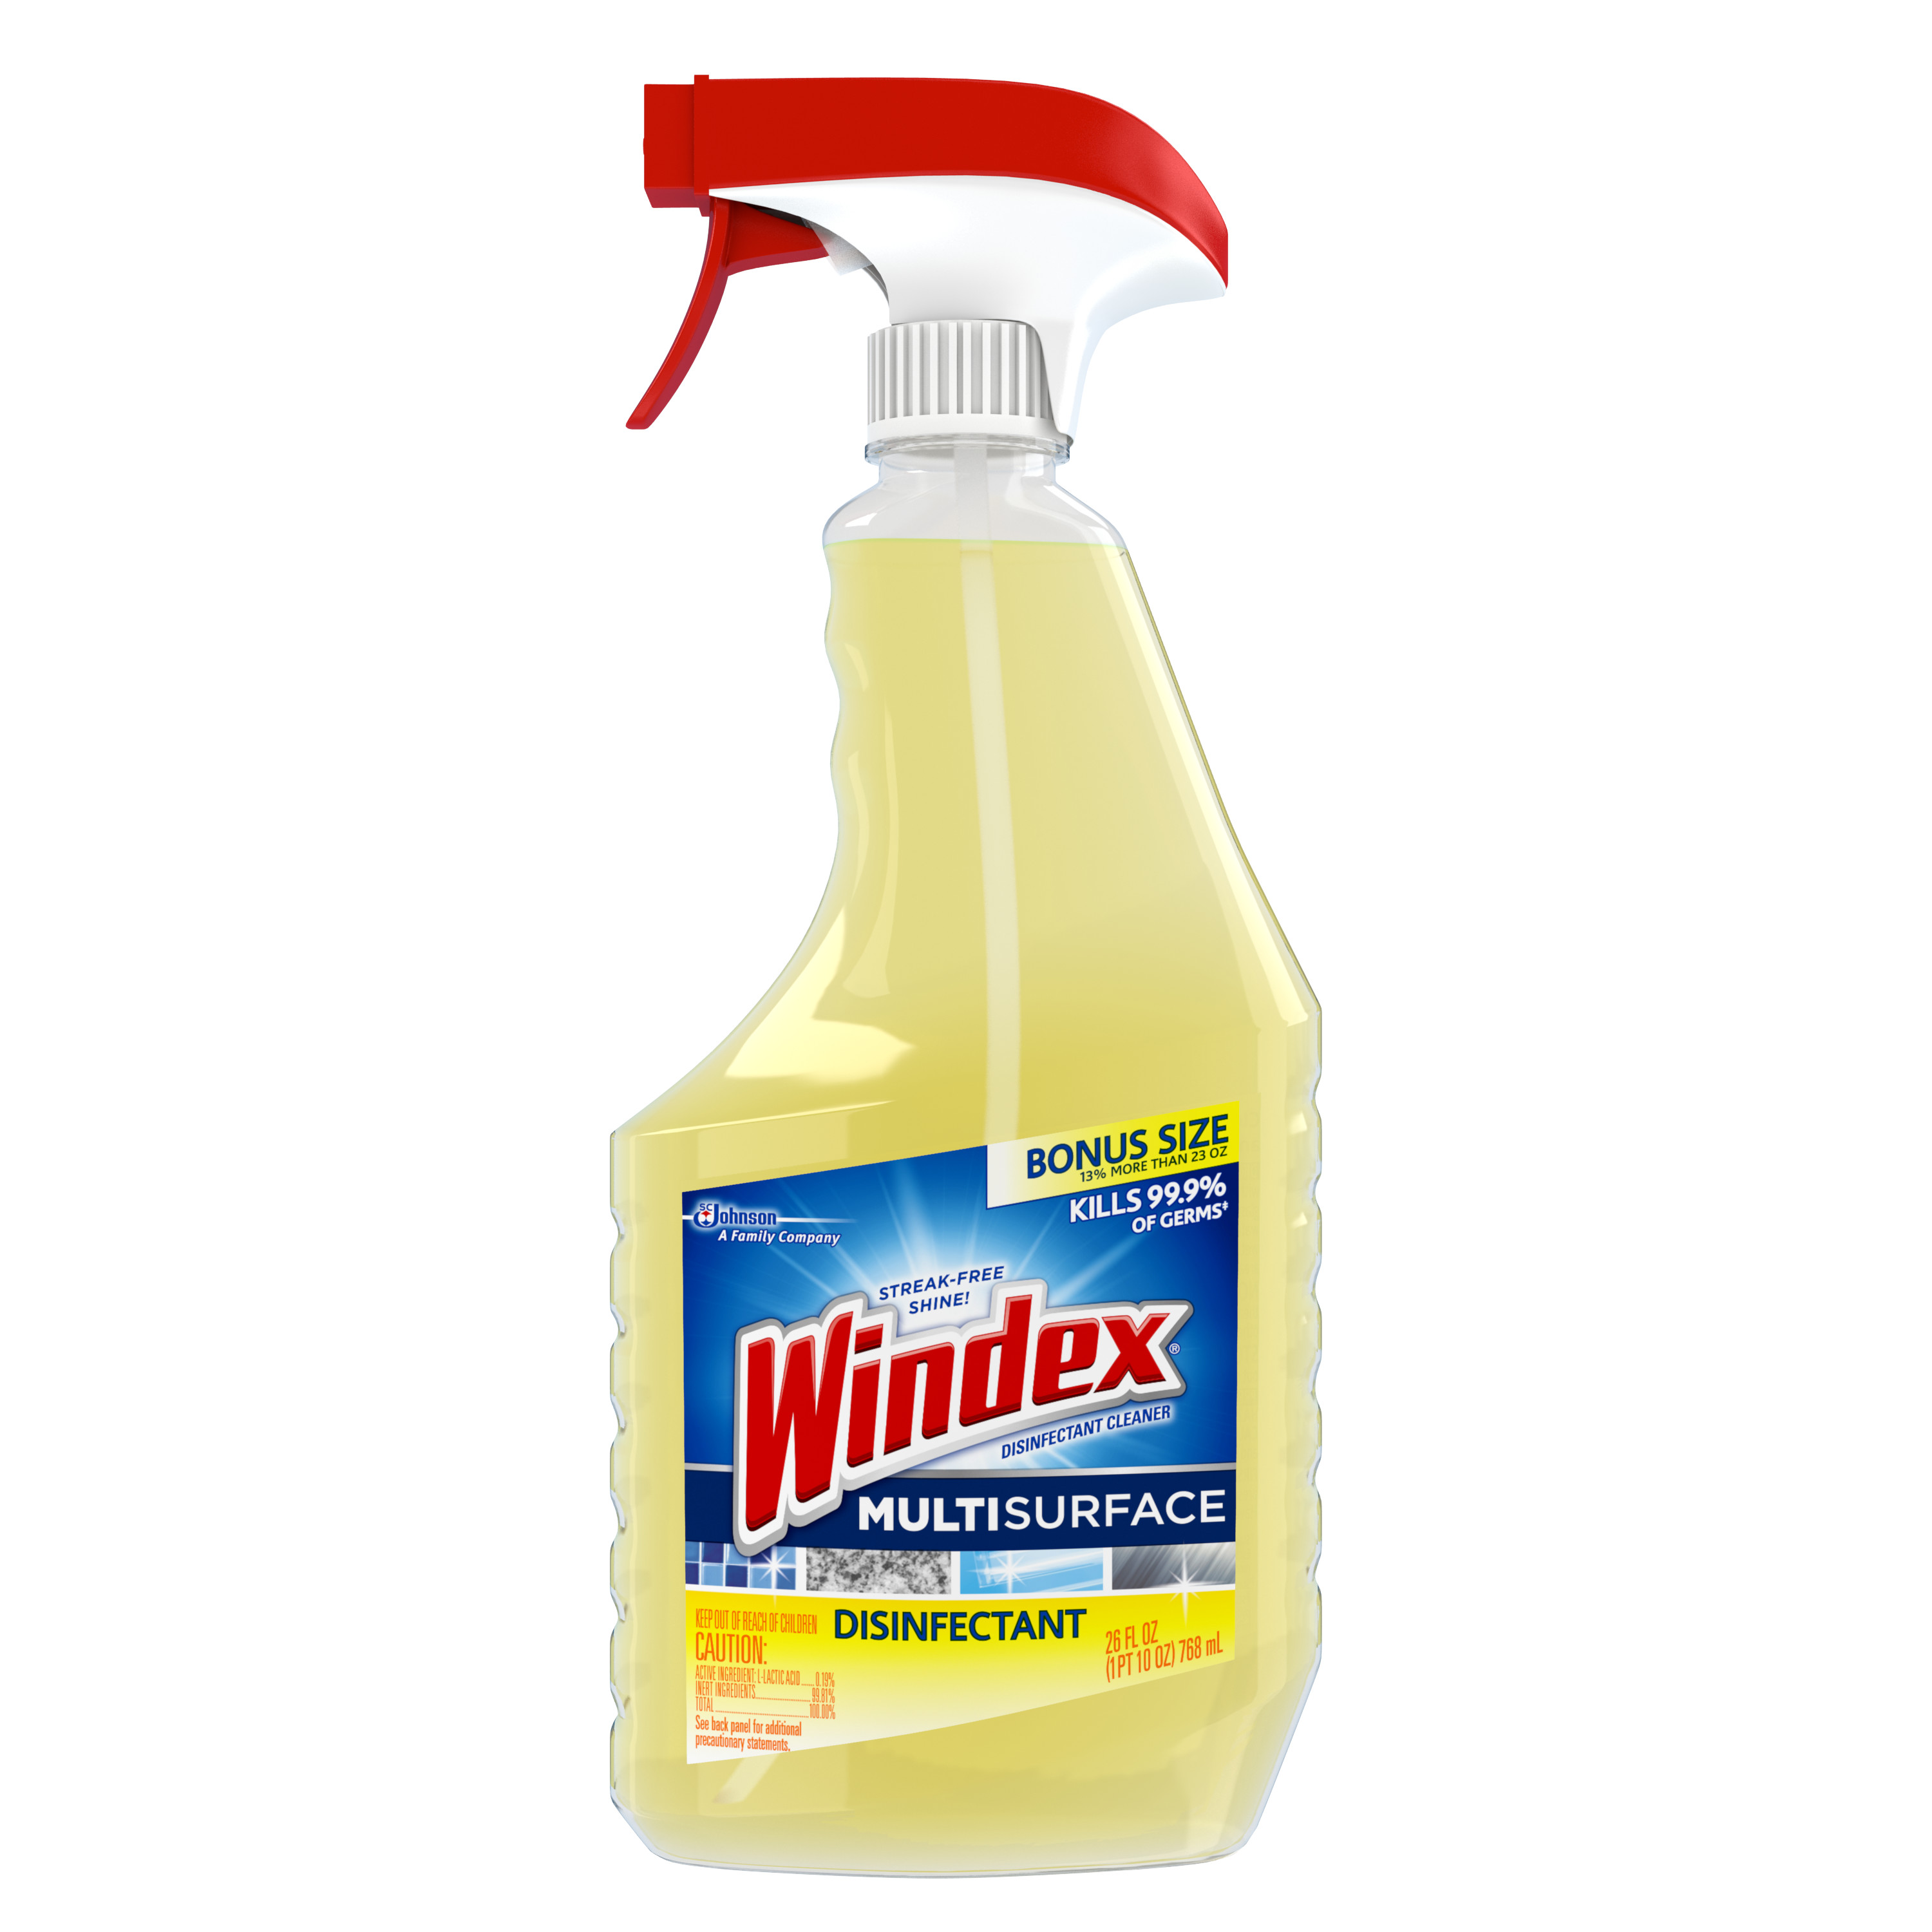 Windex Disinfectant Cleaner Multi-Surface Trigger 26 Fluid Ounces